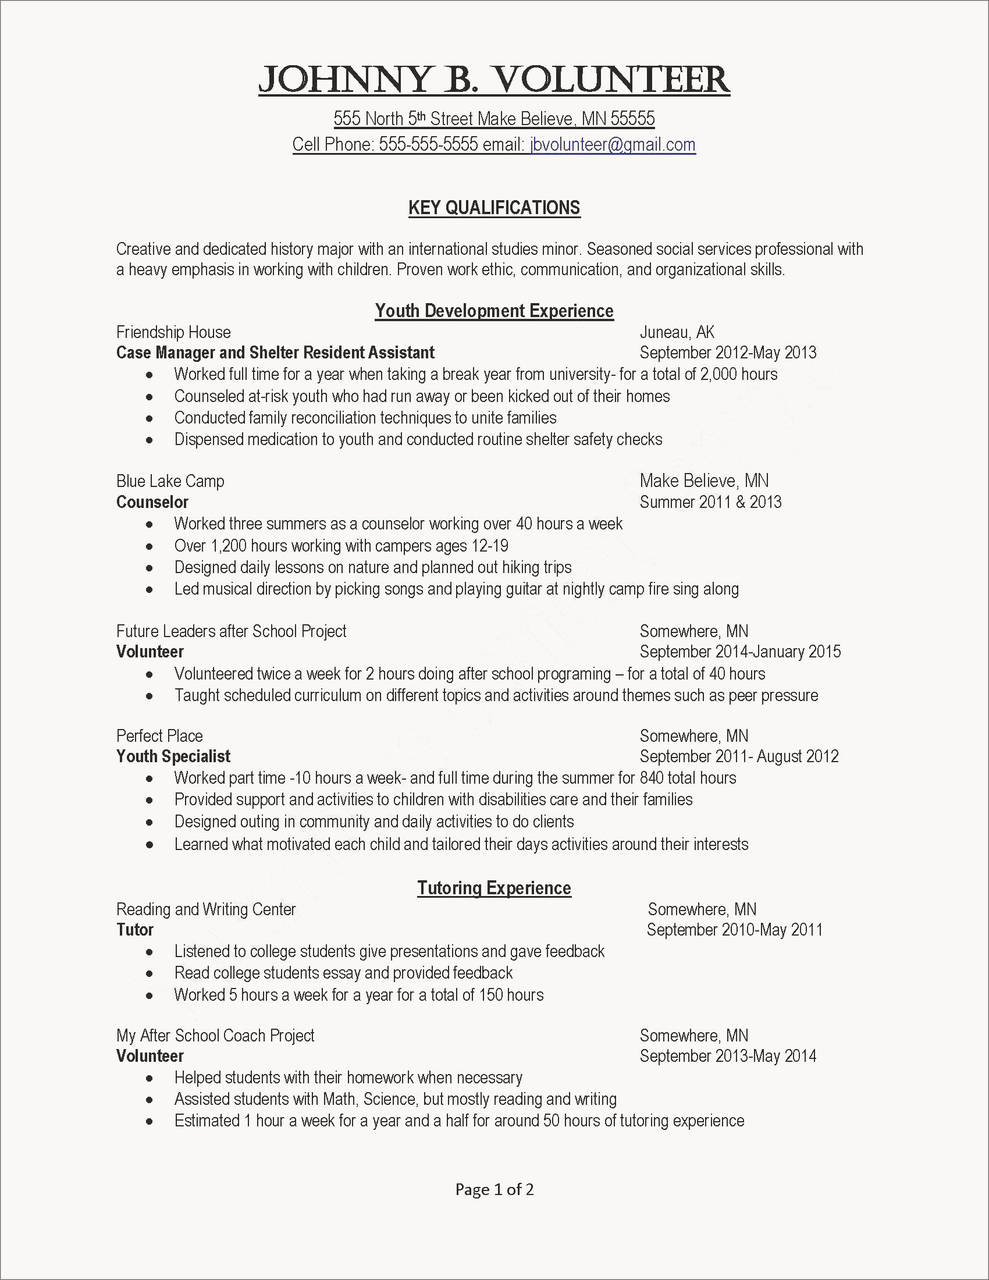 Freelance Writer Resume Template - Perfect Resume Example Luxury Resumes Skills Examples Resume